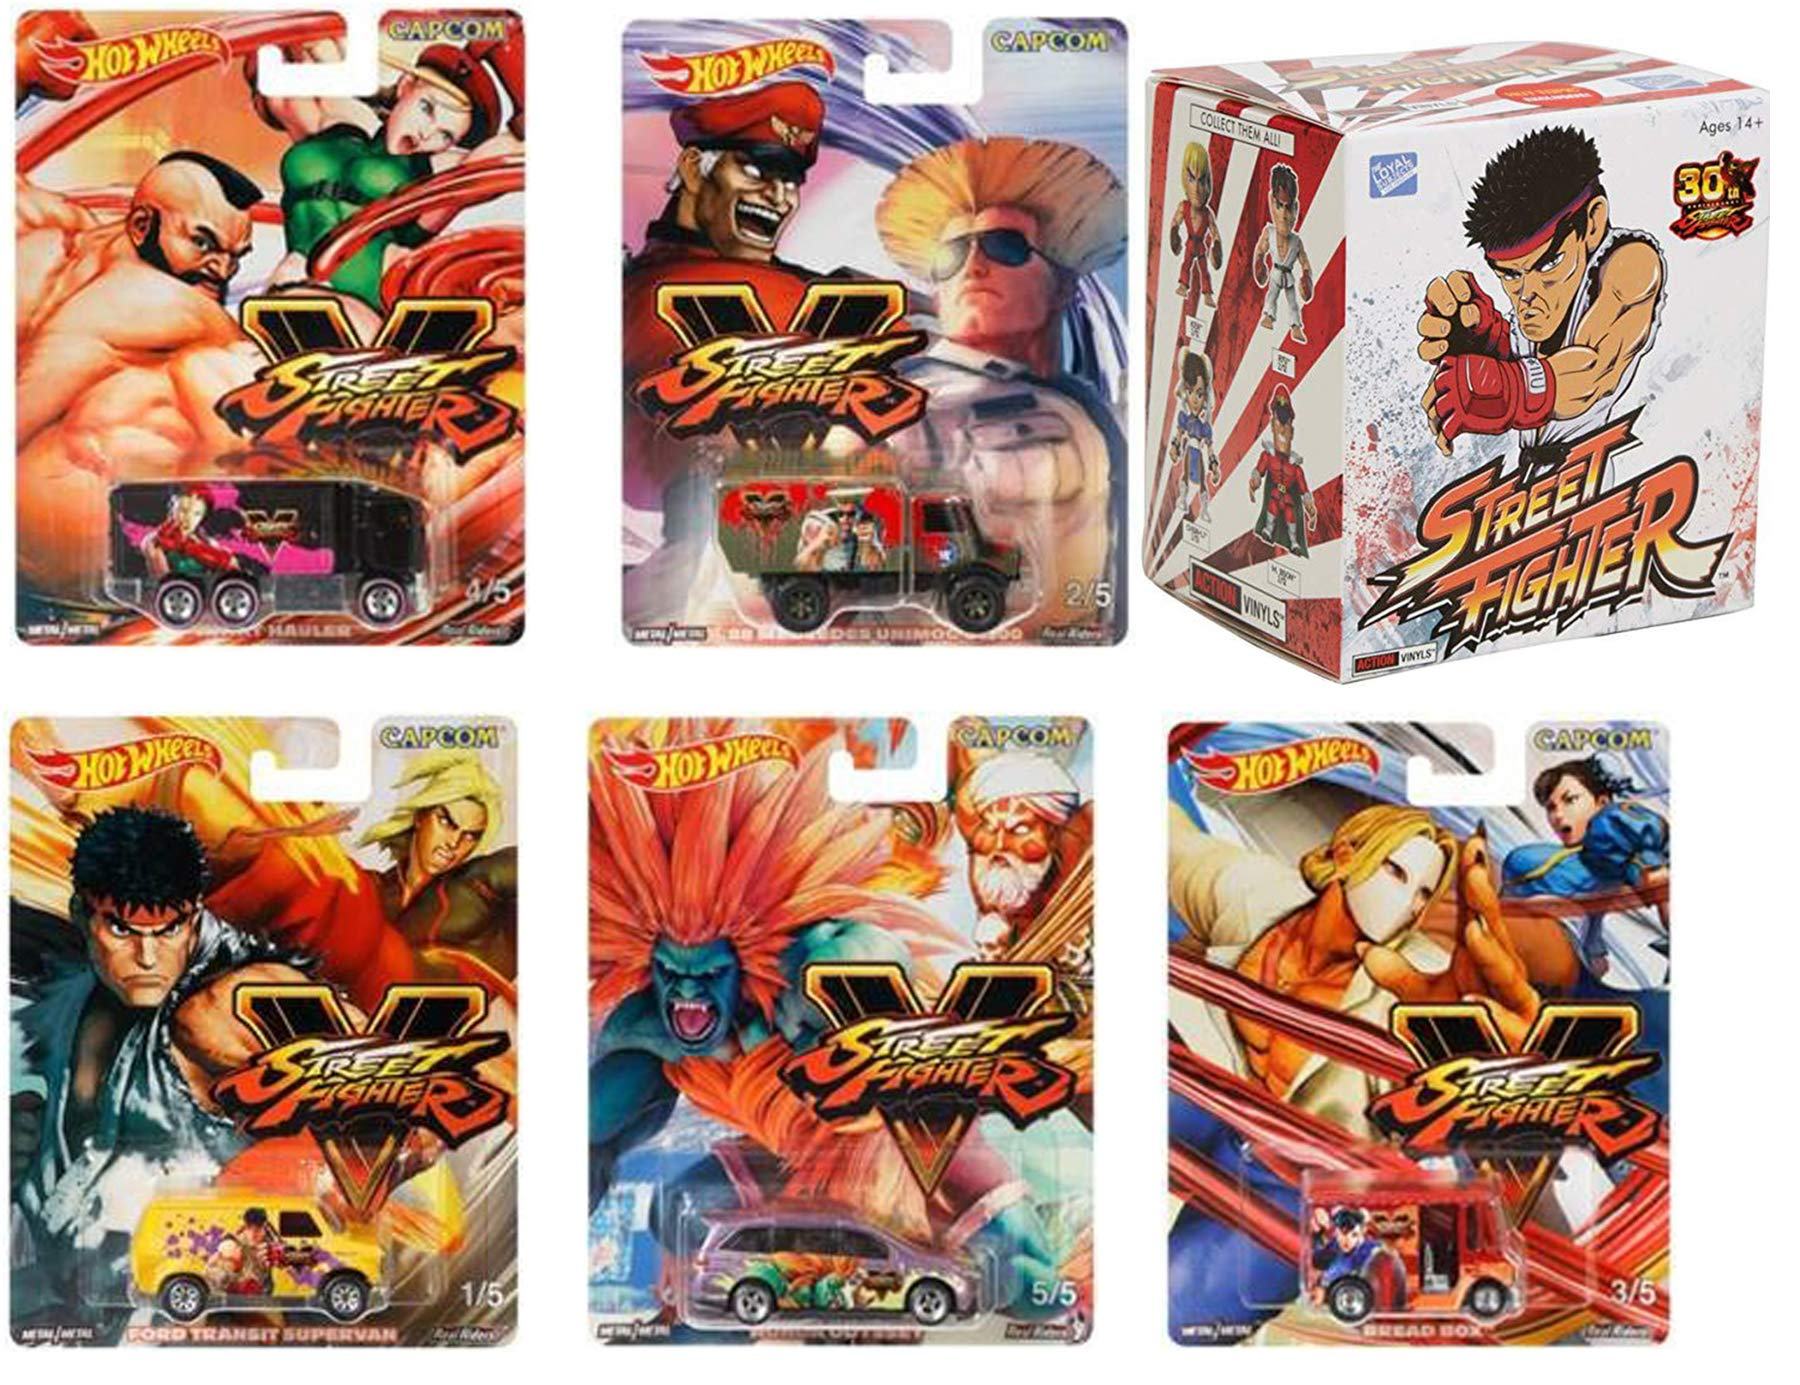 Real Action Hot Wheels Personaje del juego Street Fighter 2019 Pop Culture Series Street Fighter V Paquete de 5 Hot Wheels Bread Box Chun Li VS Vega Odyssey Blanka Ford Van Super + Vinyls Figura exclusiva